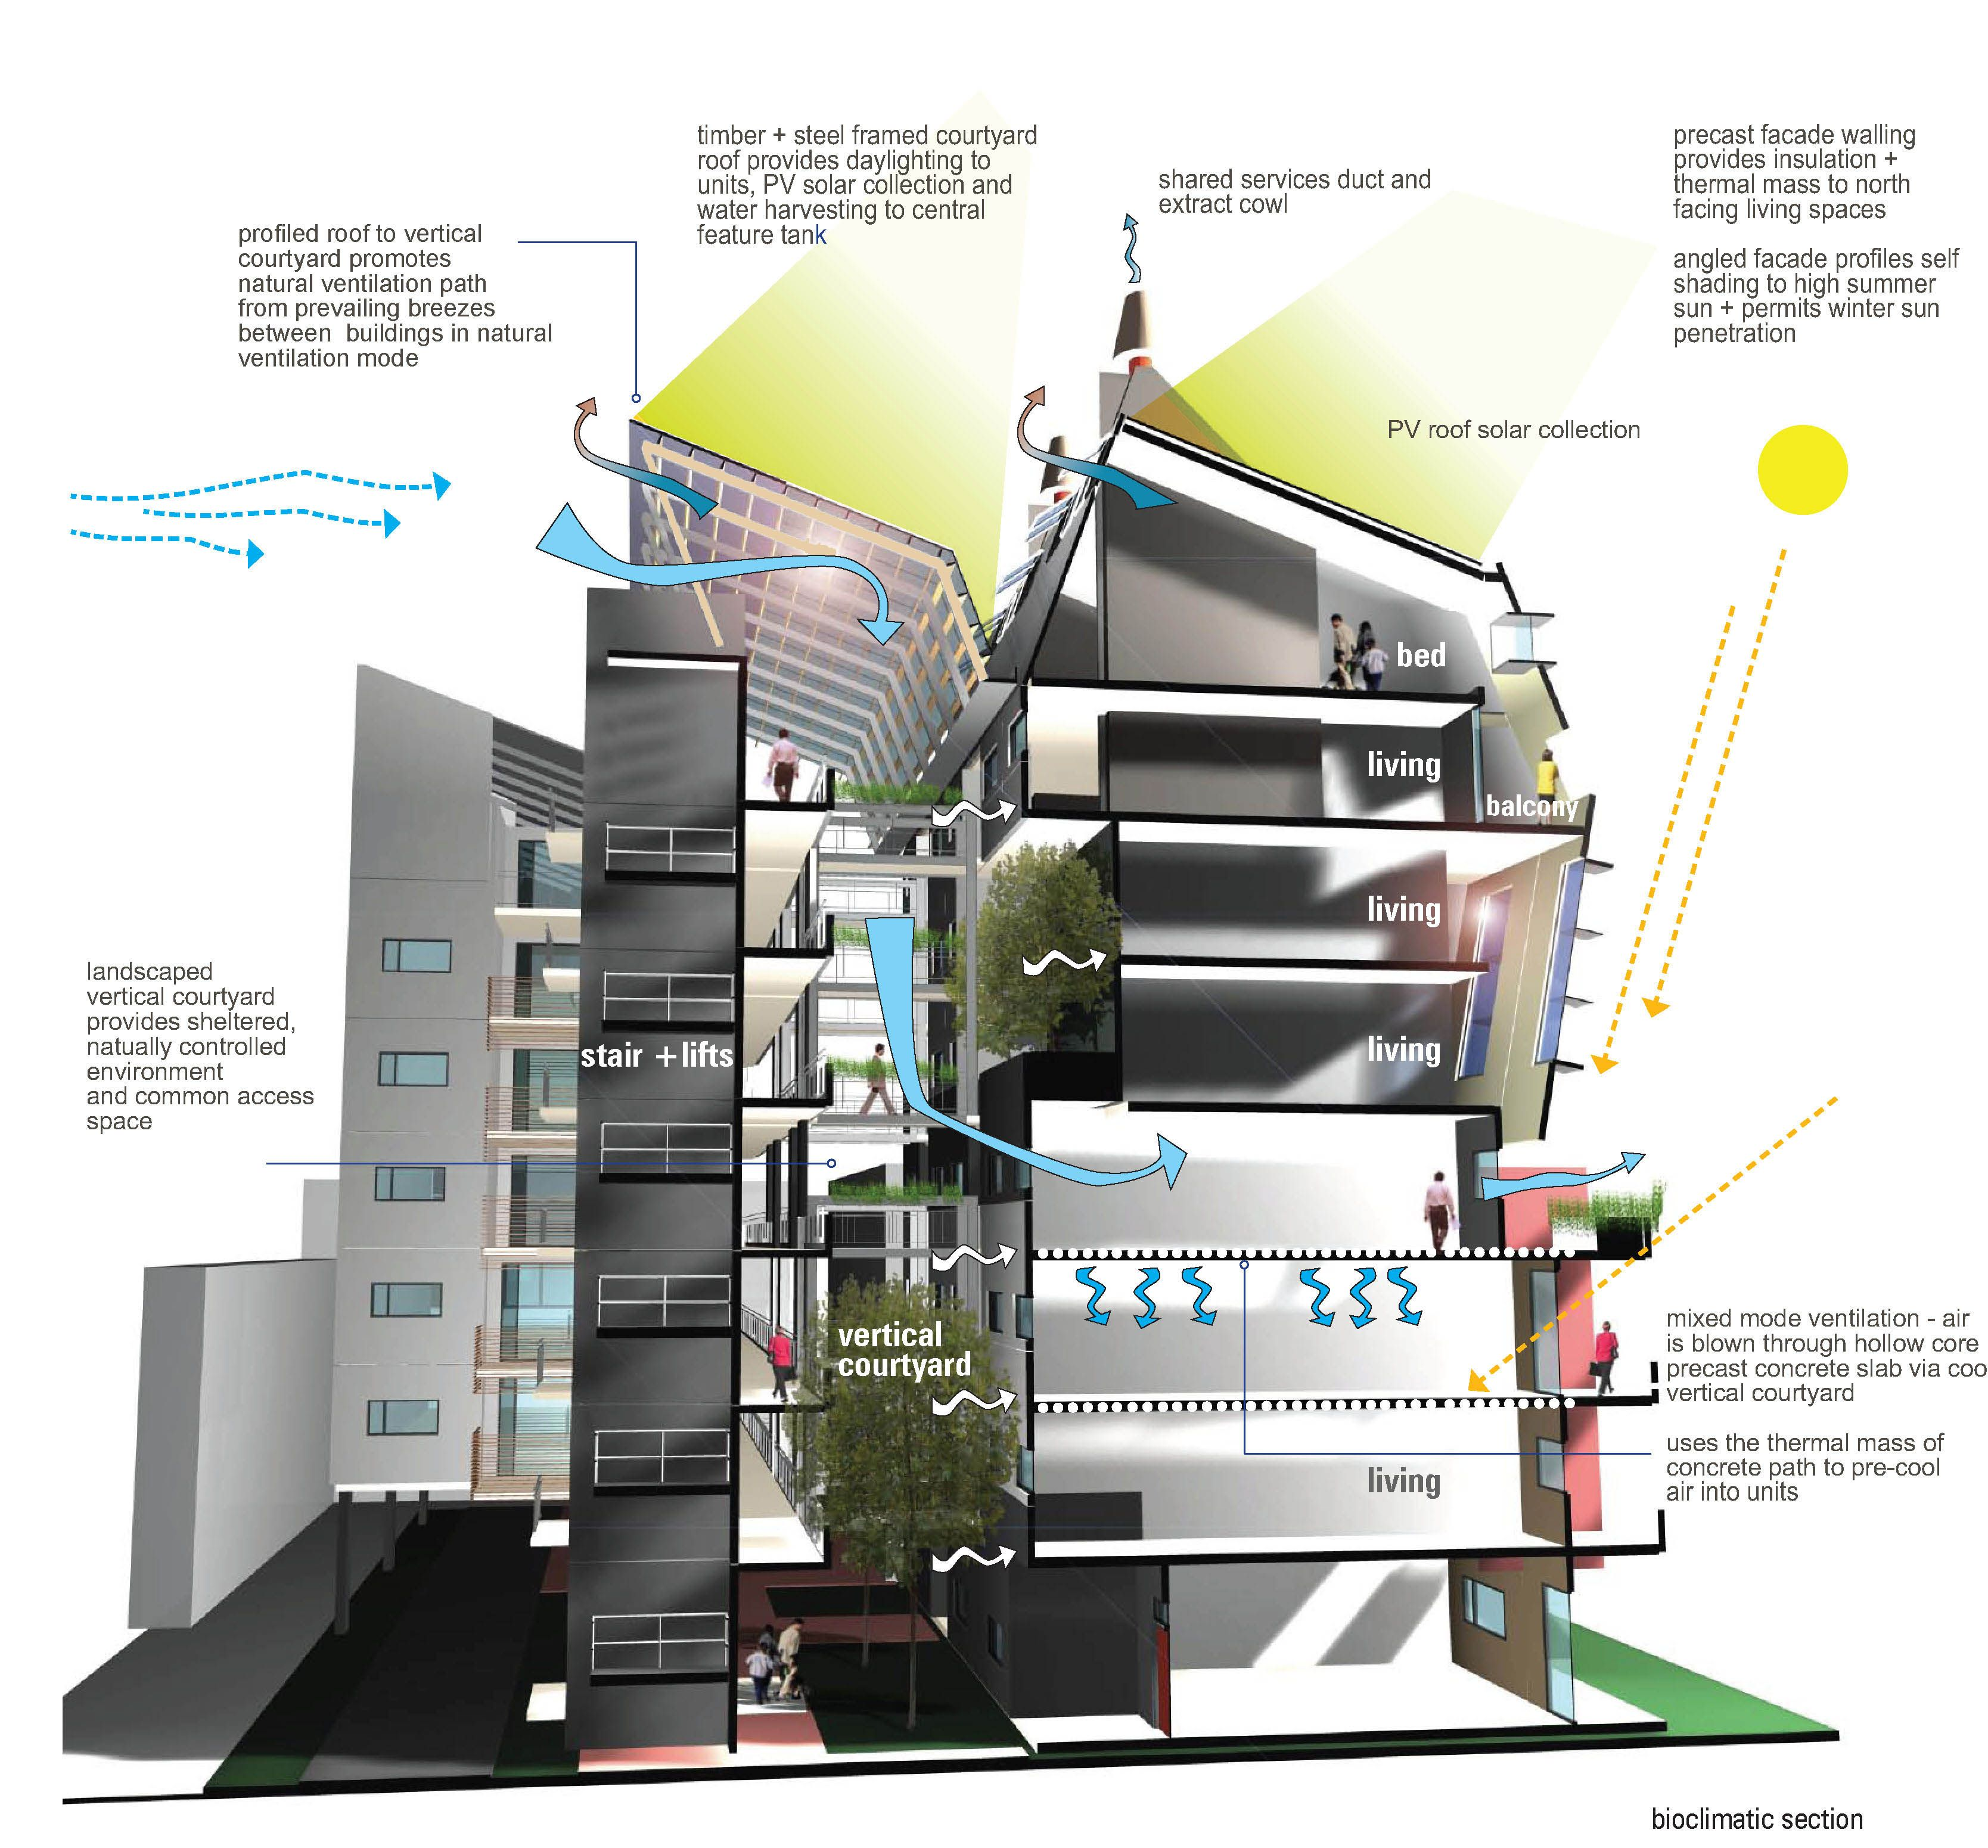 small resolution of this diagram shows a vertical courtyard concept to promote natural ventilation on various levels of the building while also utilizing prevailing breezes